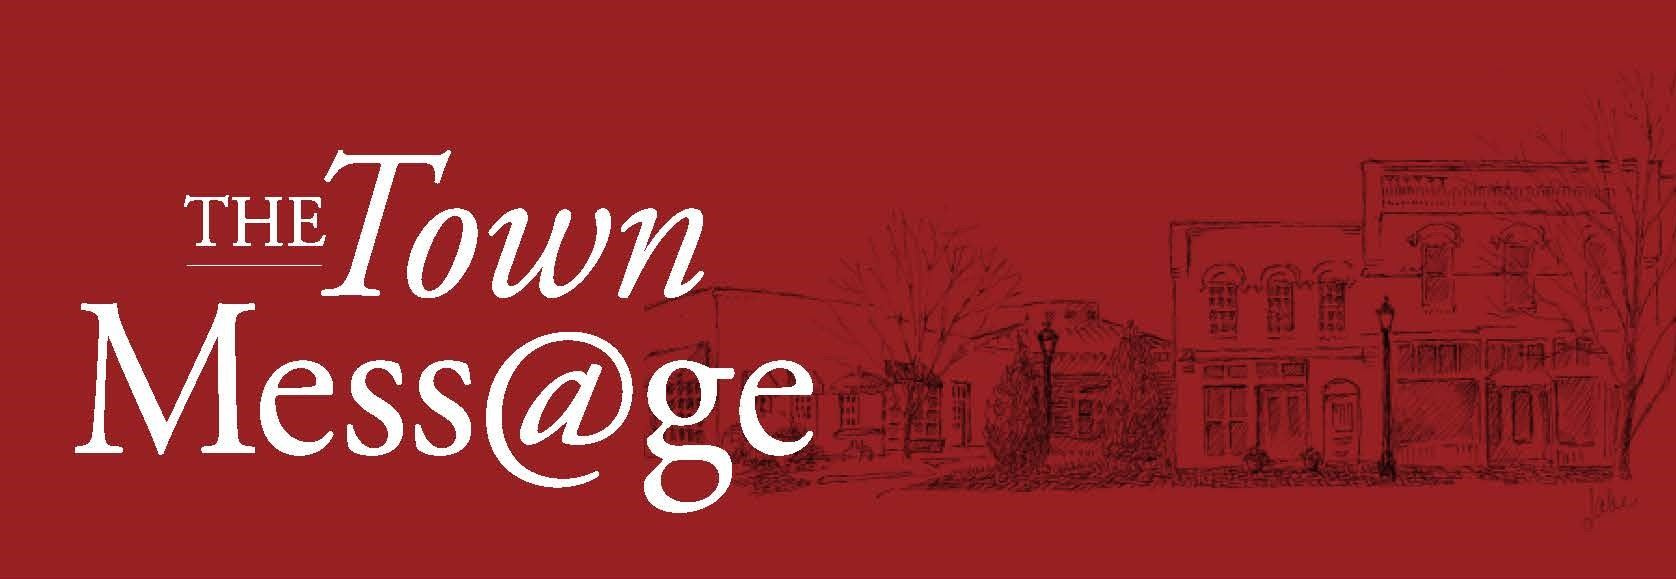 Town Message Banner 2020